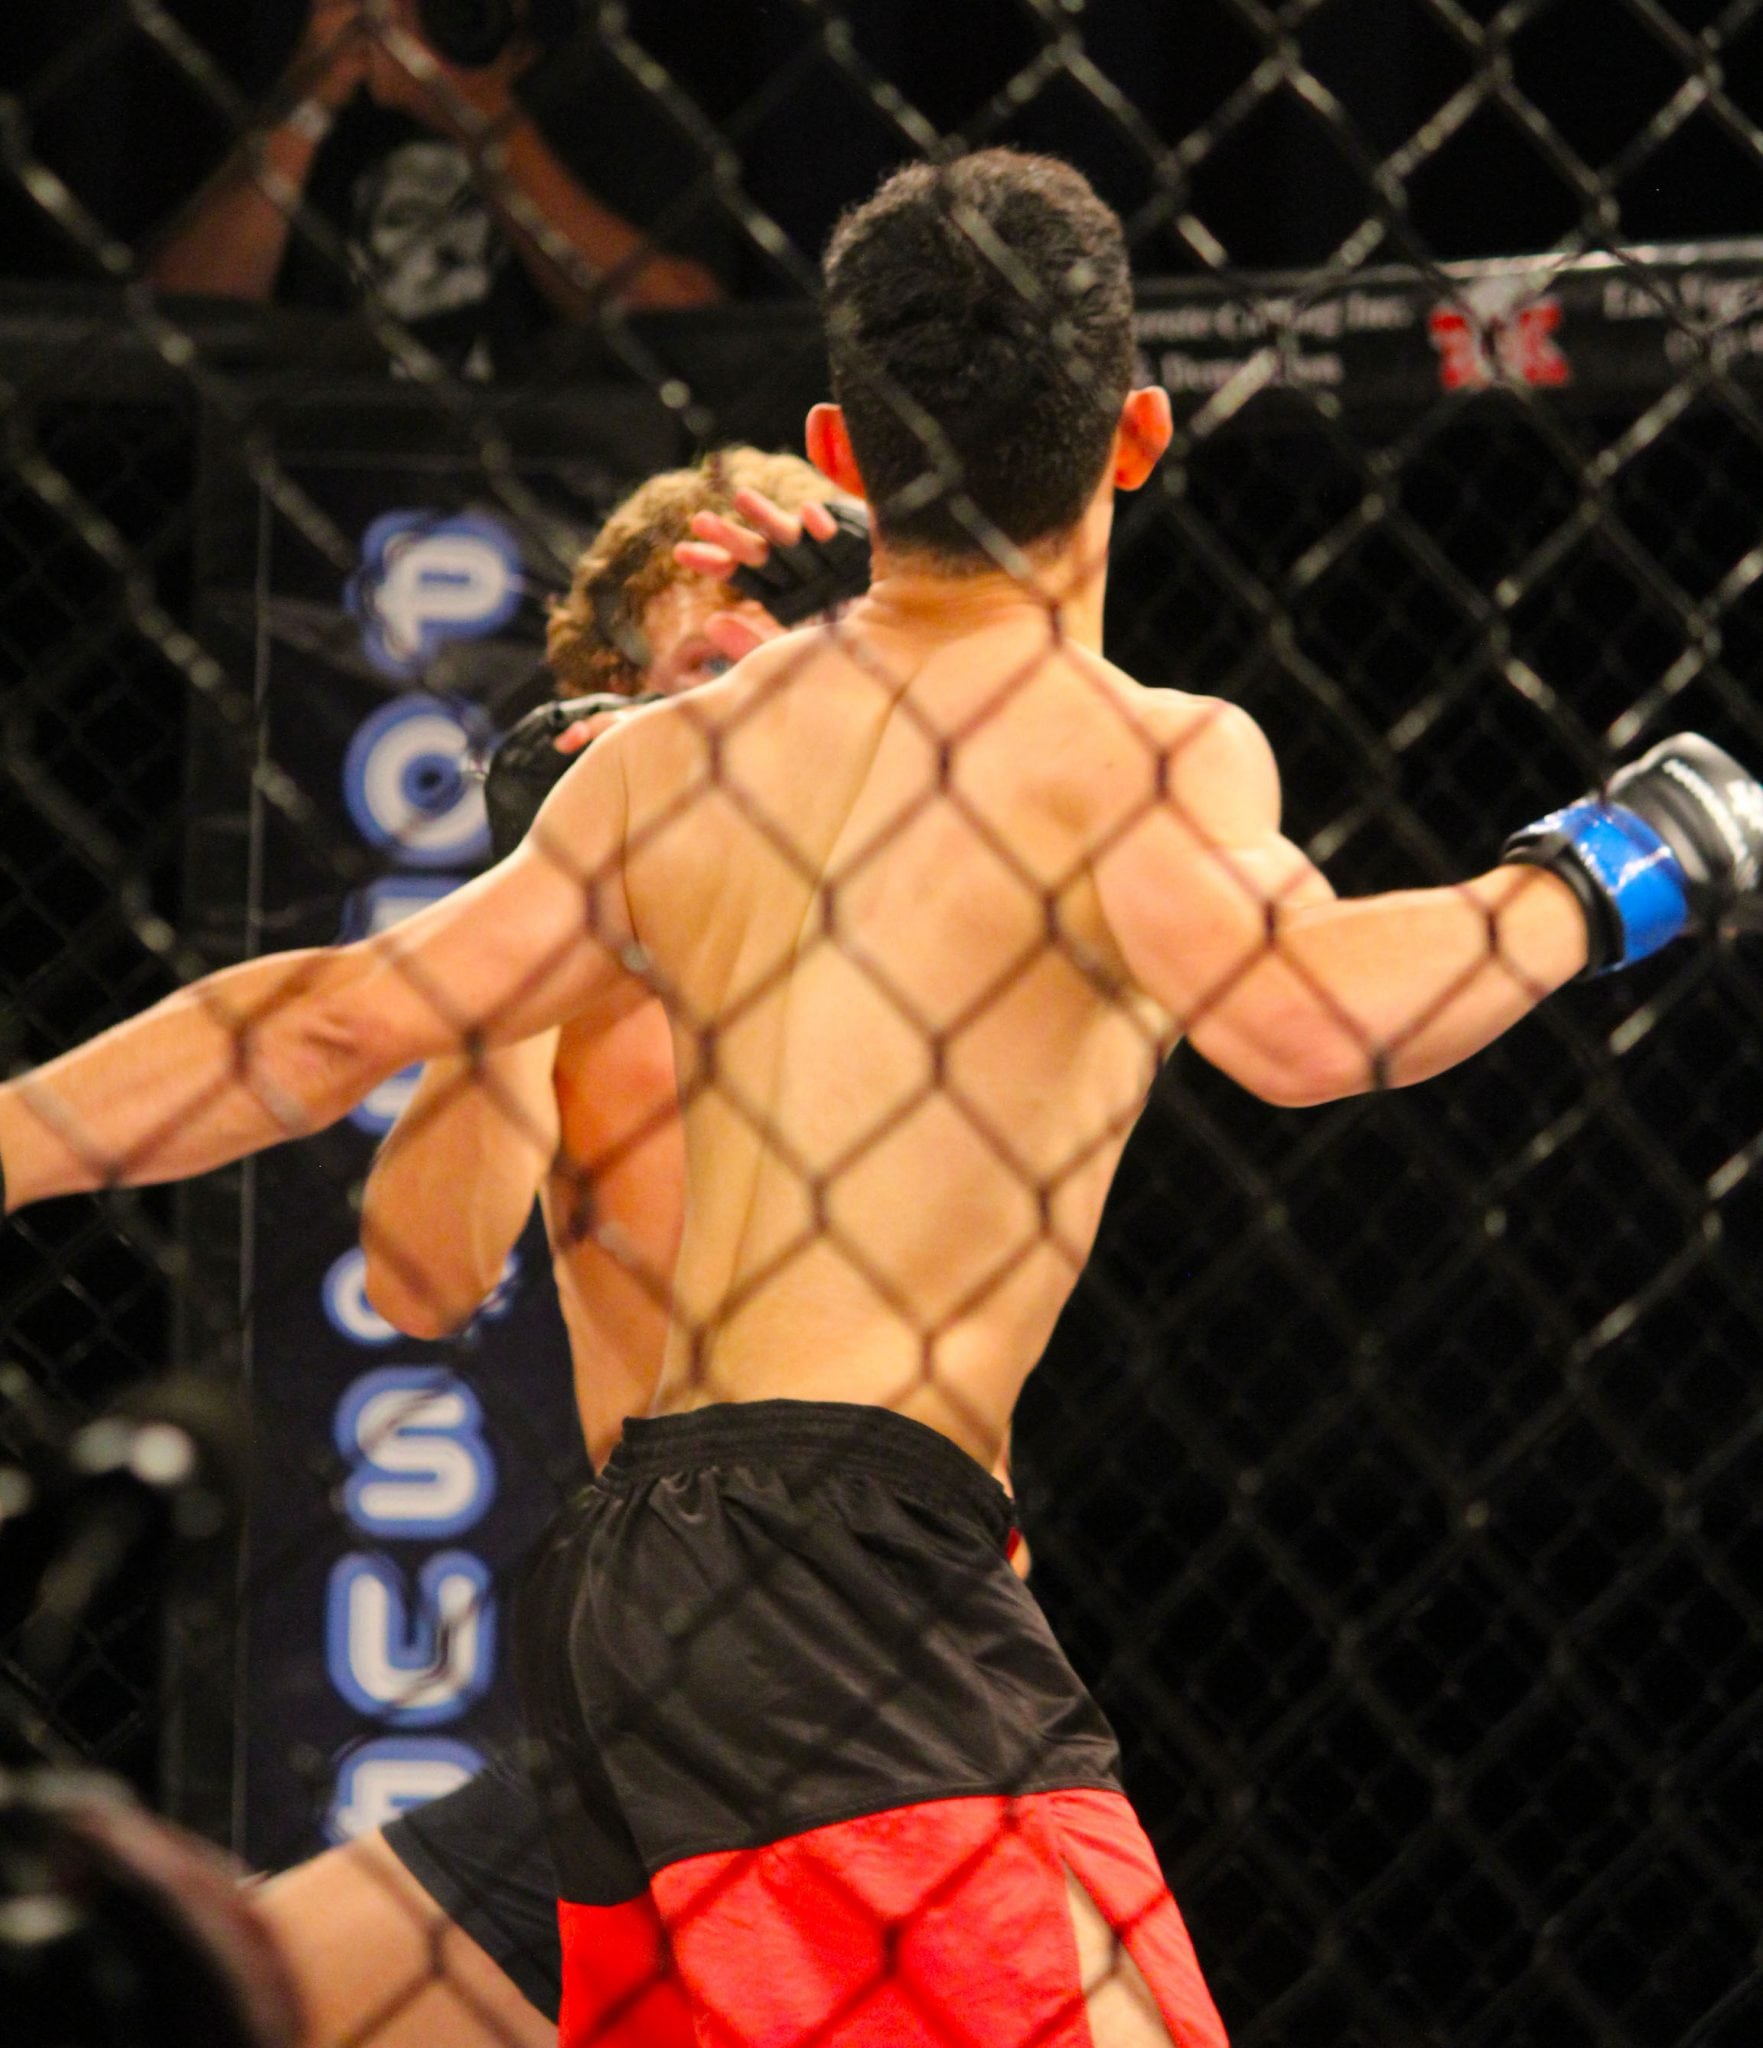 MMA card brings Mayhem to Mesquite